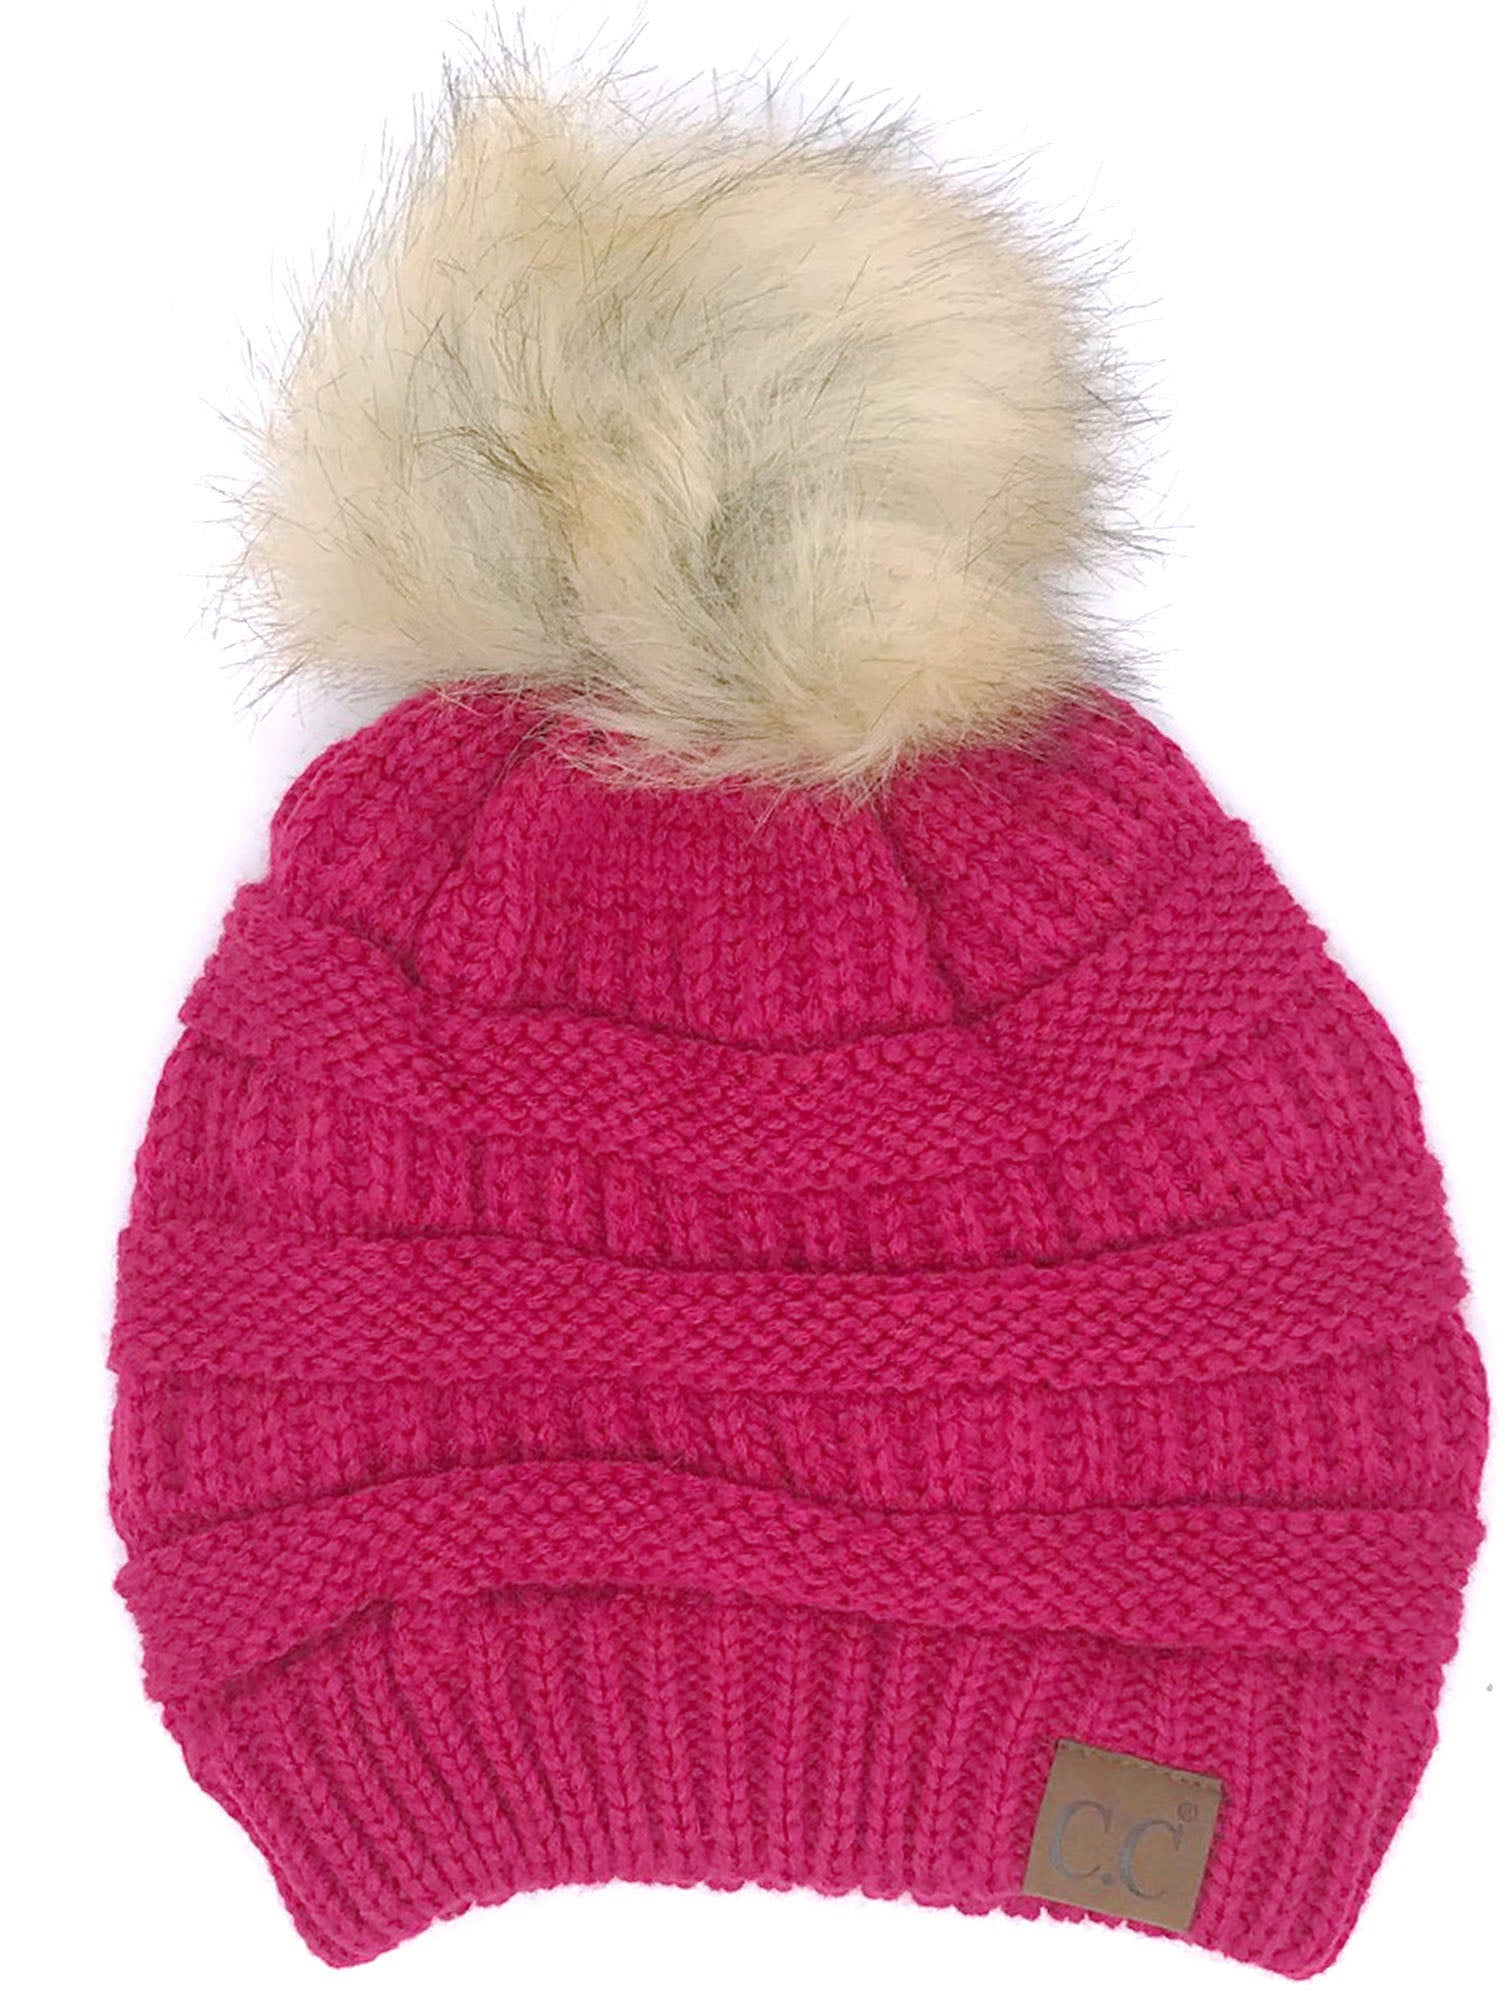 CC-43 BEANIE W/FAUX FUR POM - HOT PINK